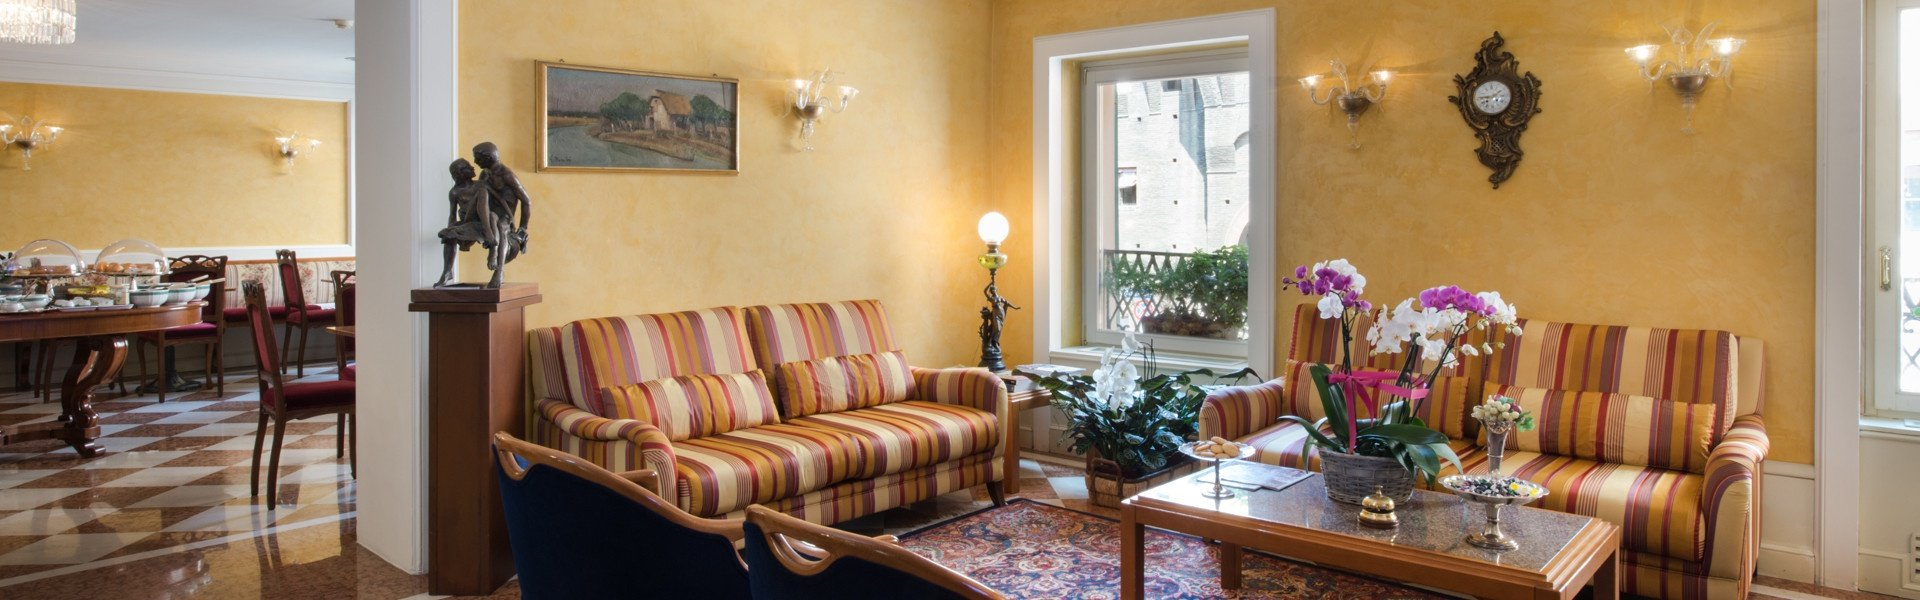 The special feeling of being at home  art hotel orologio bologna